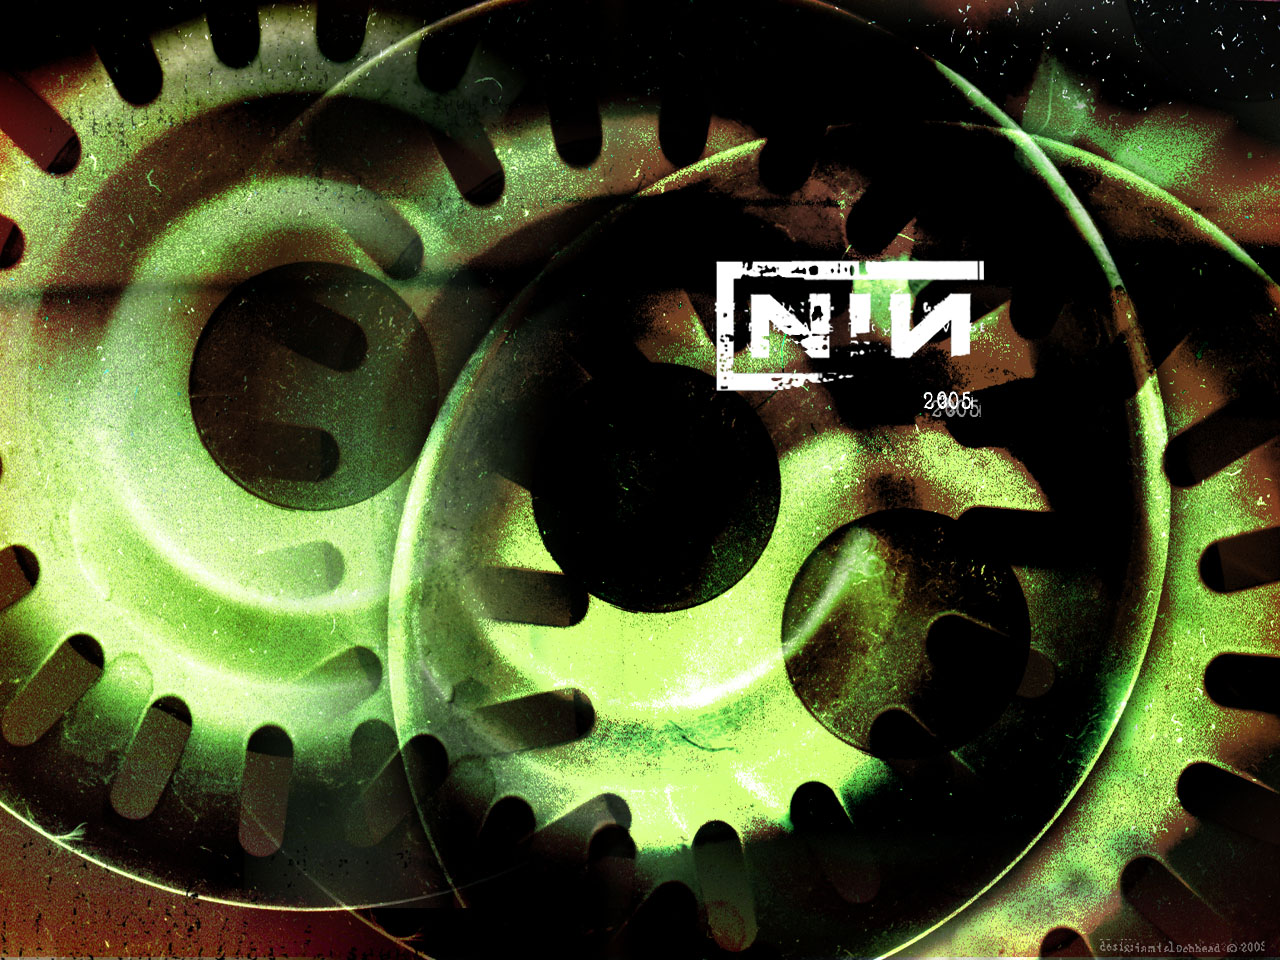 nine inch nails 2005 desktop background